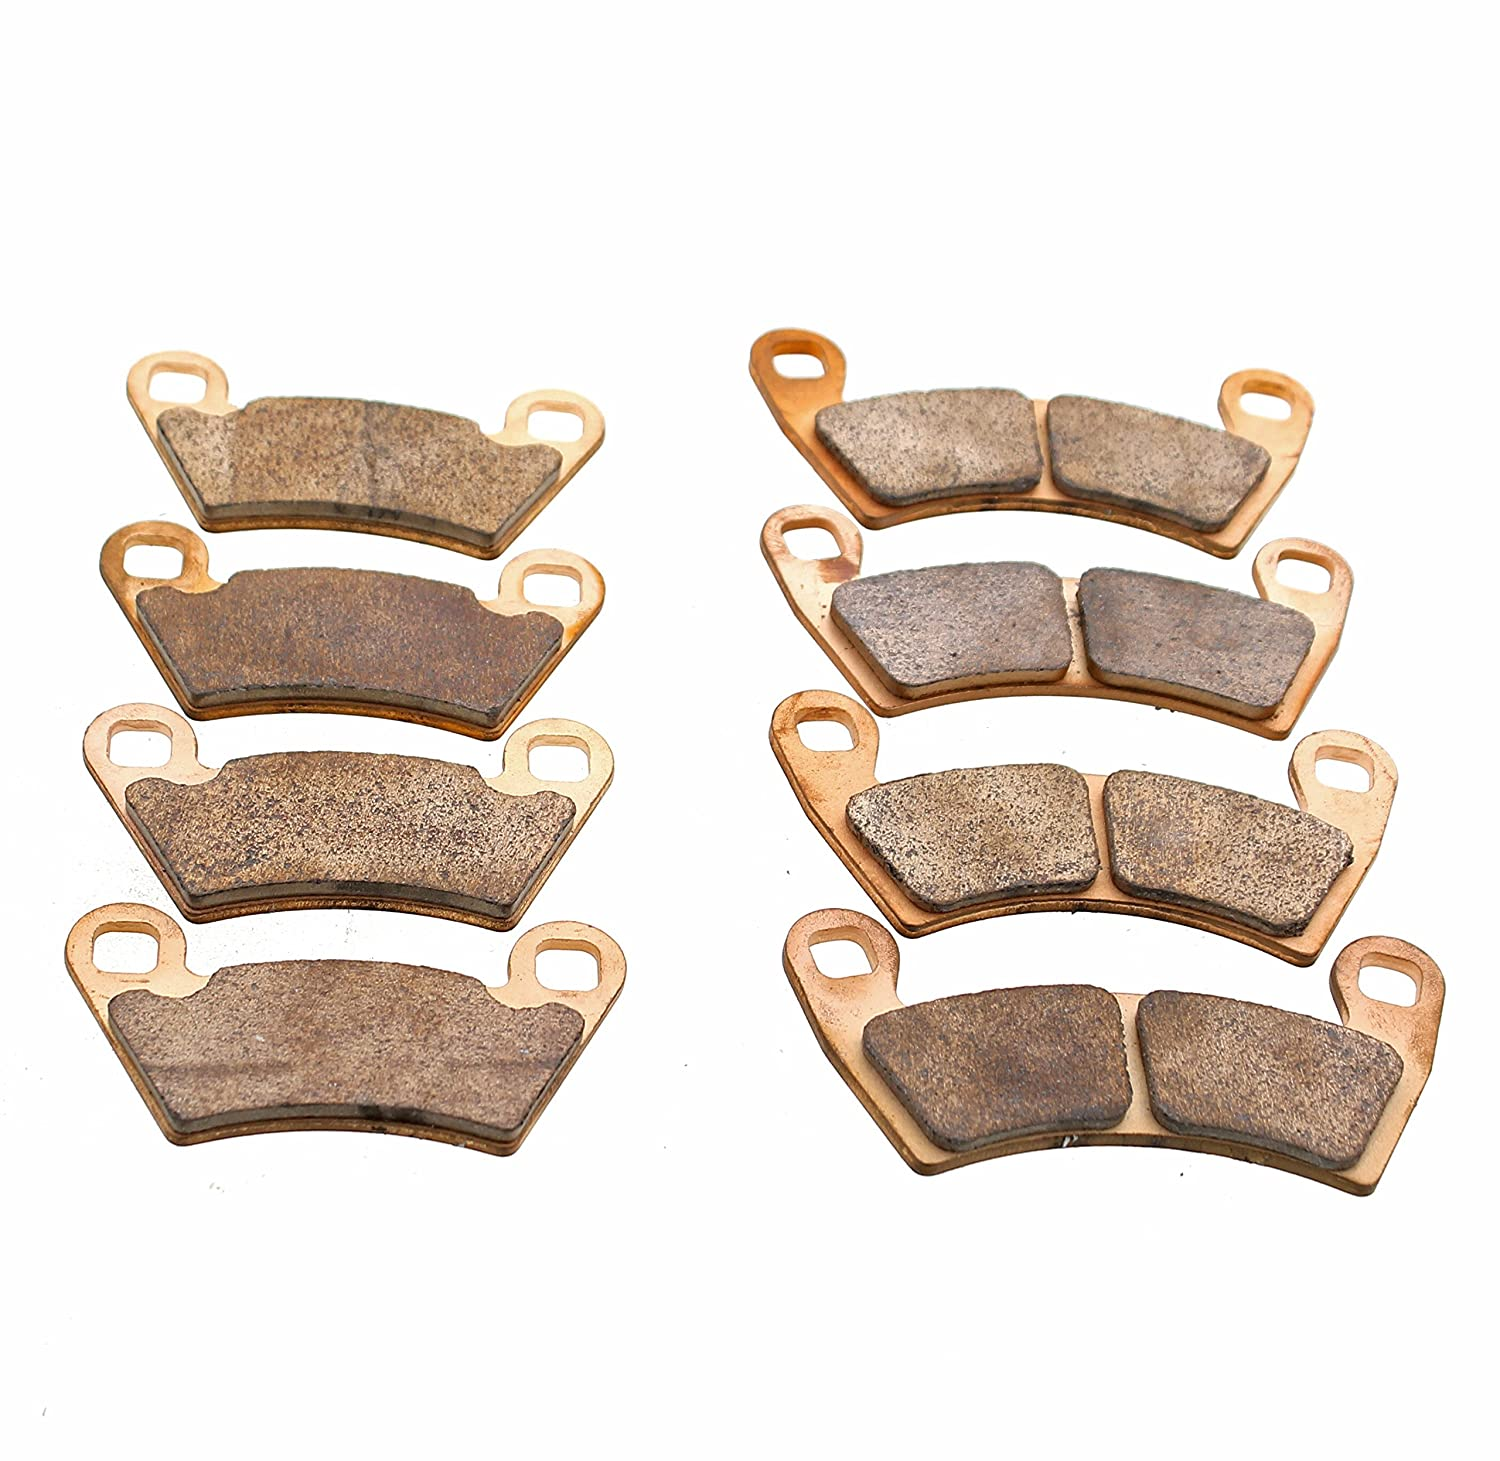 Brake Pads fit Polaris Ranger XP 900 2012-2018 Front and Rear UTV by Race-Driven